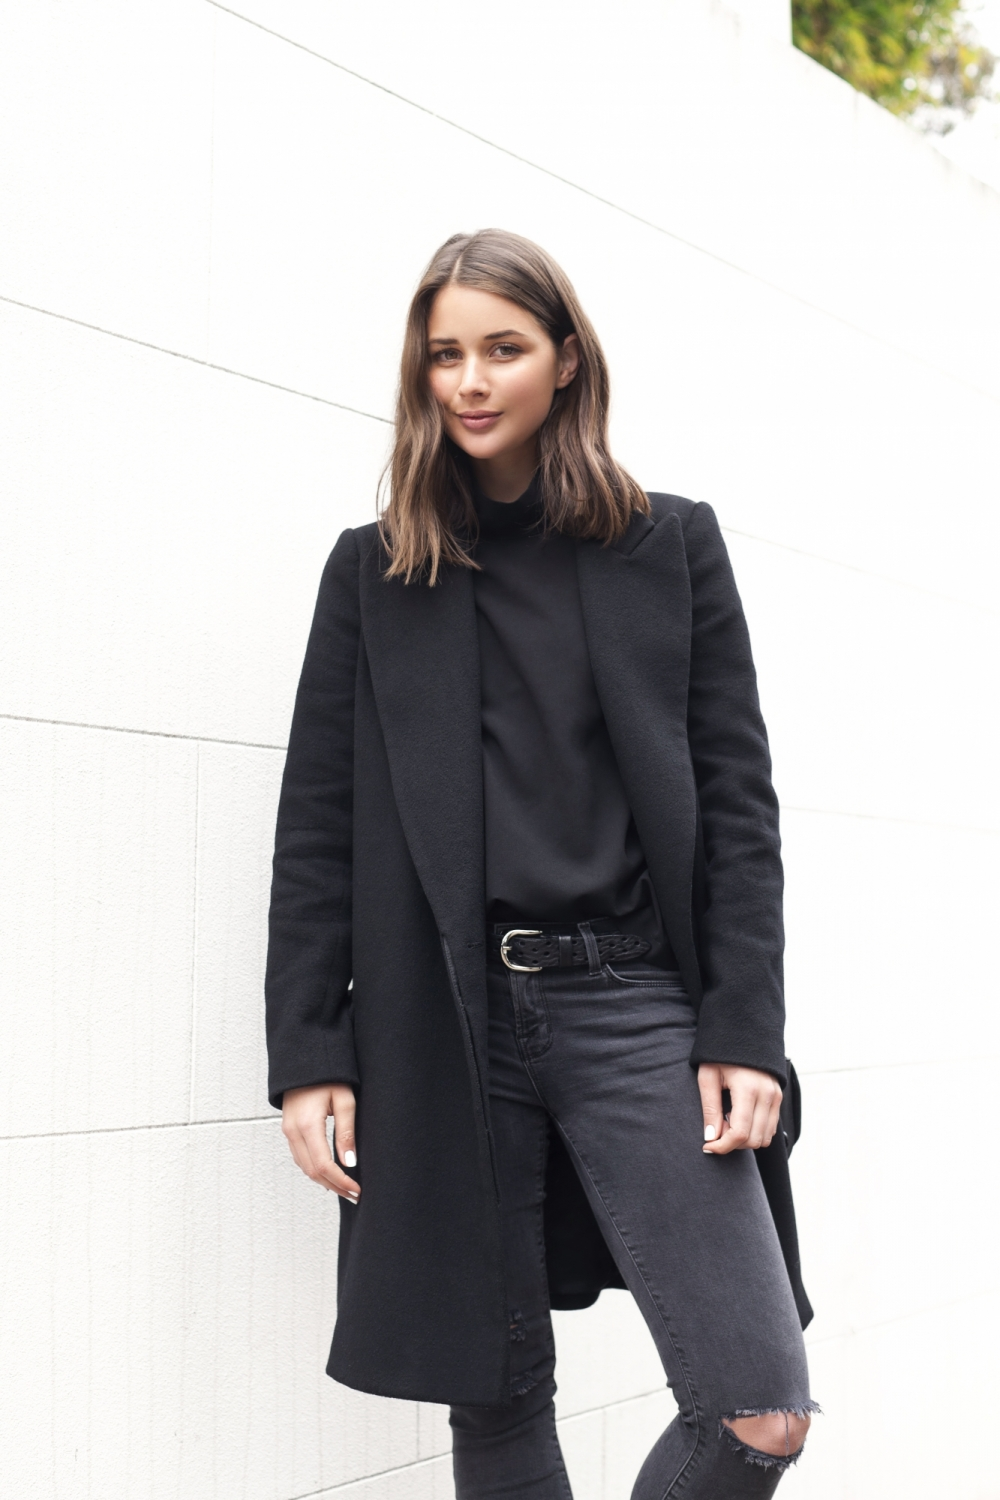 harper and harley_all black outfit_alexander wang_fashion blogger_3